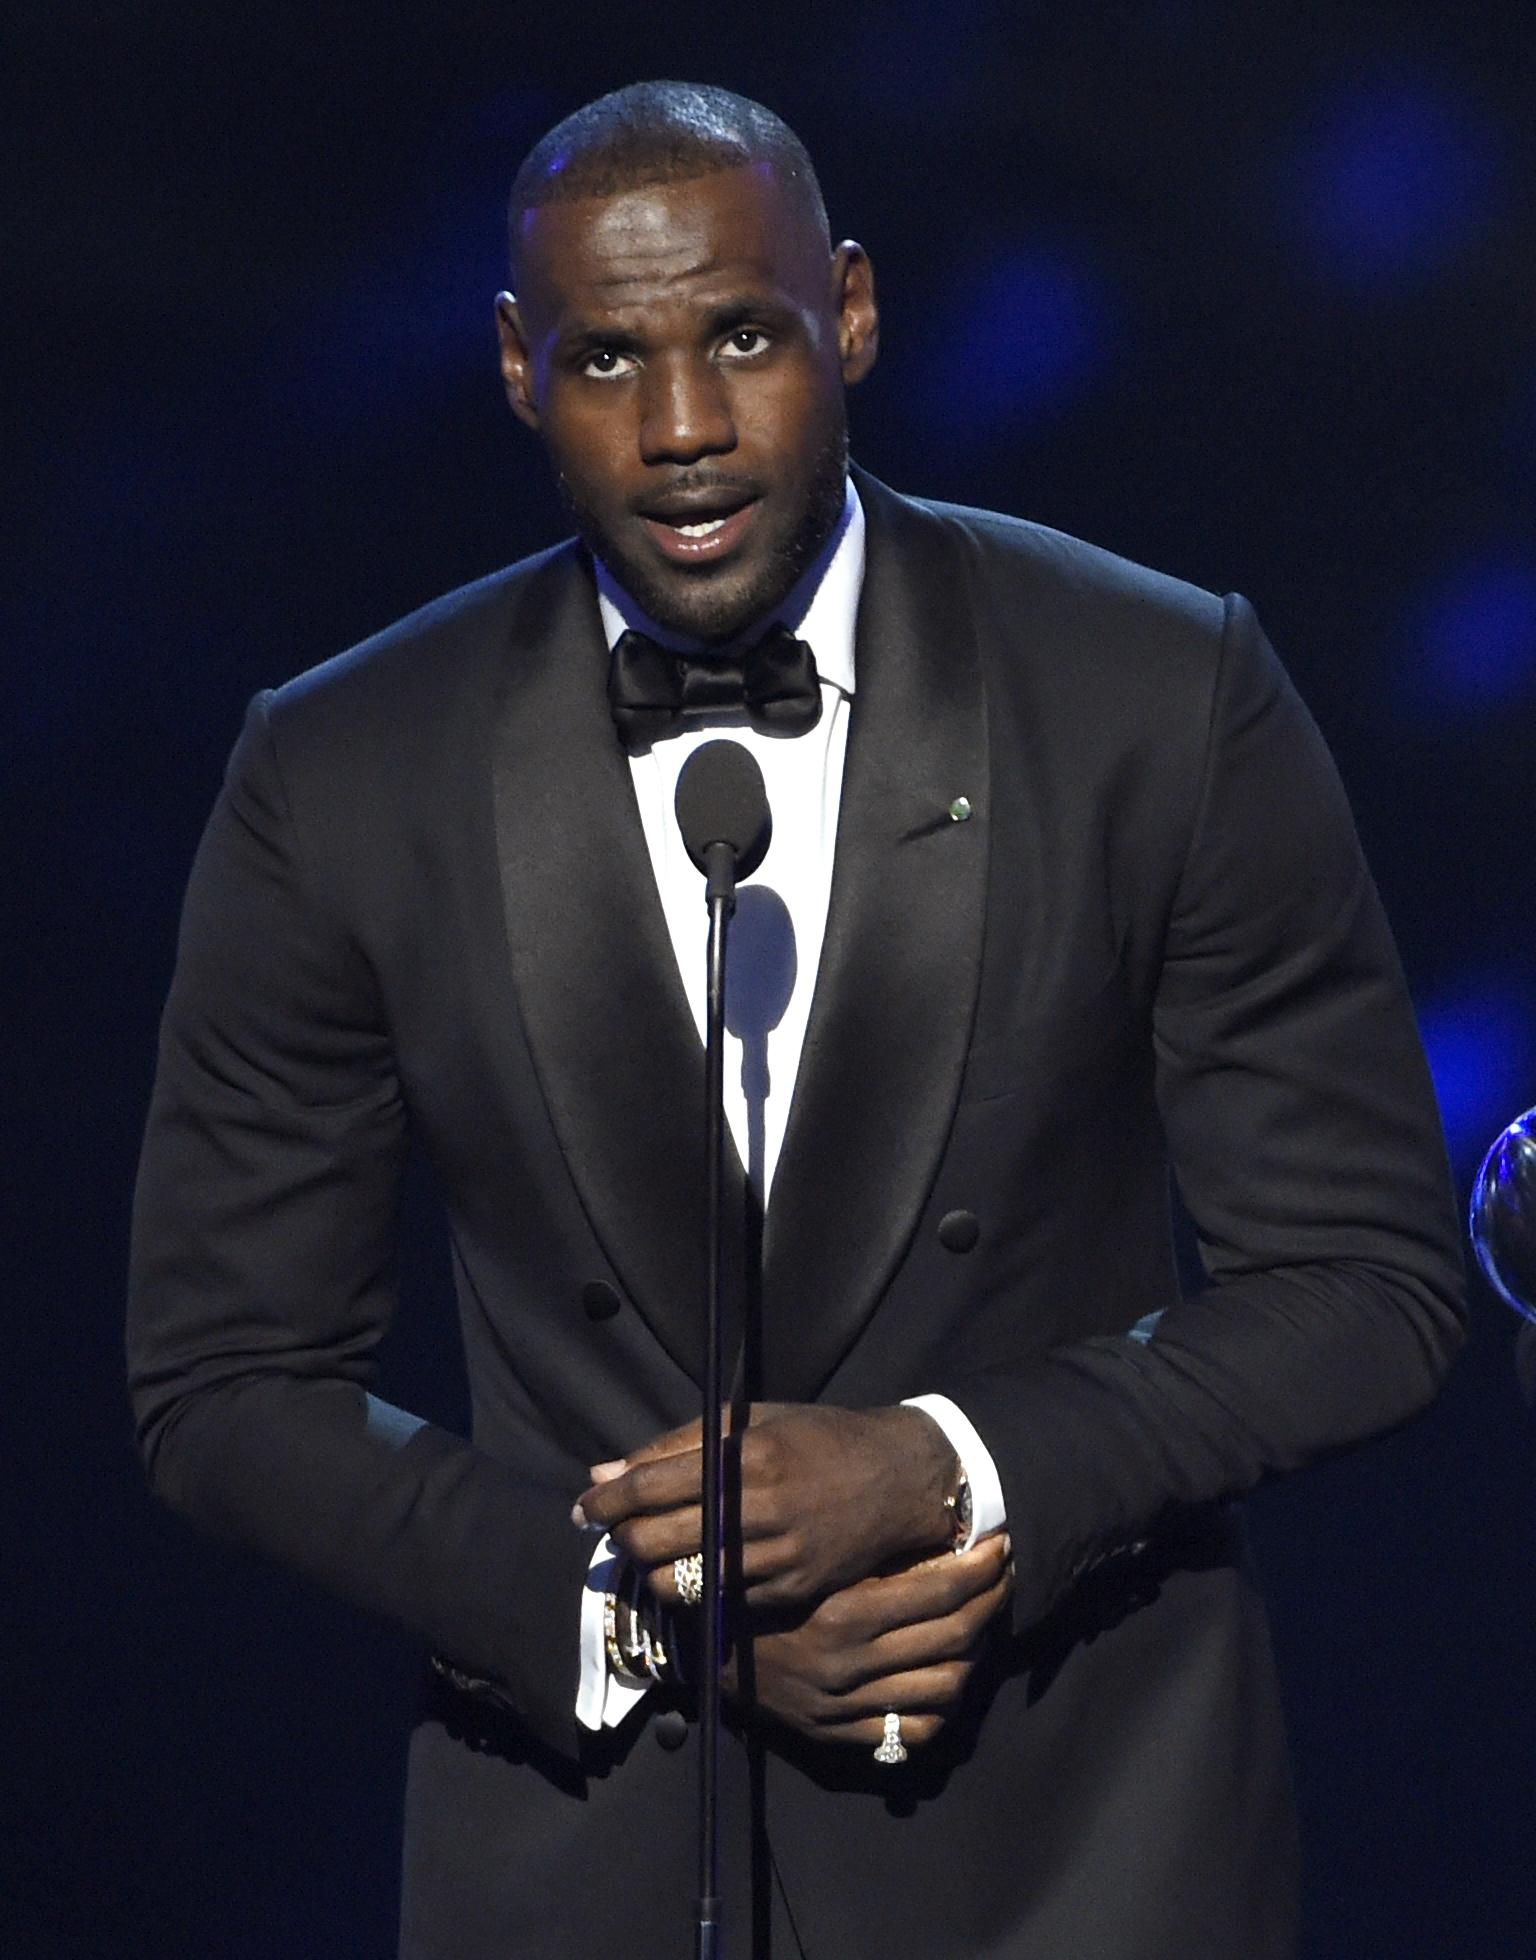 376bd4891fb7 Cleveland Cavaliers star LeBron James accepted the award for best moment  for his team s 2016 NBA